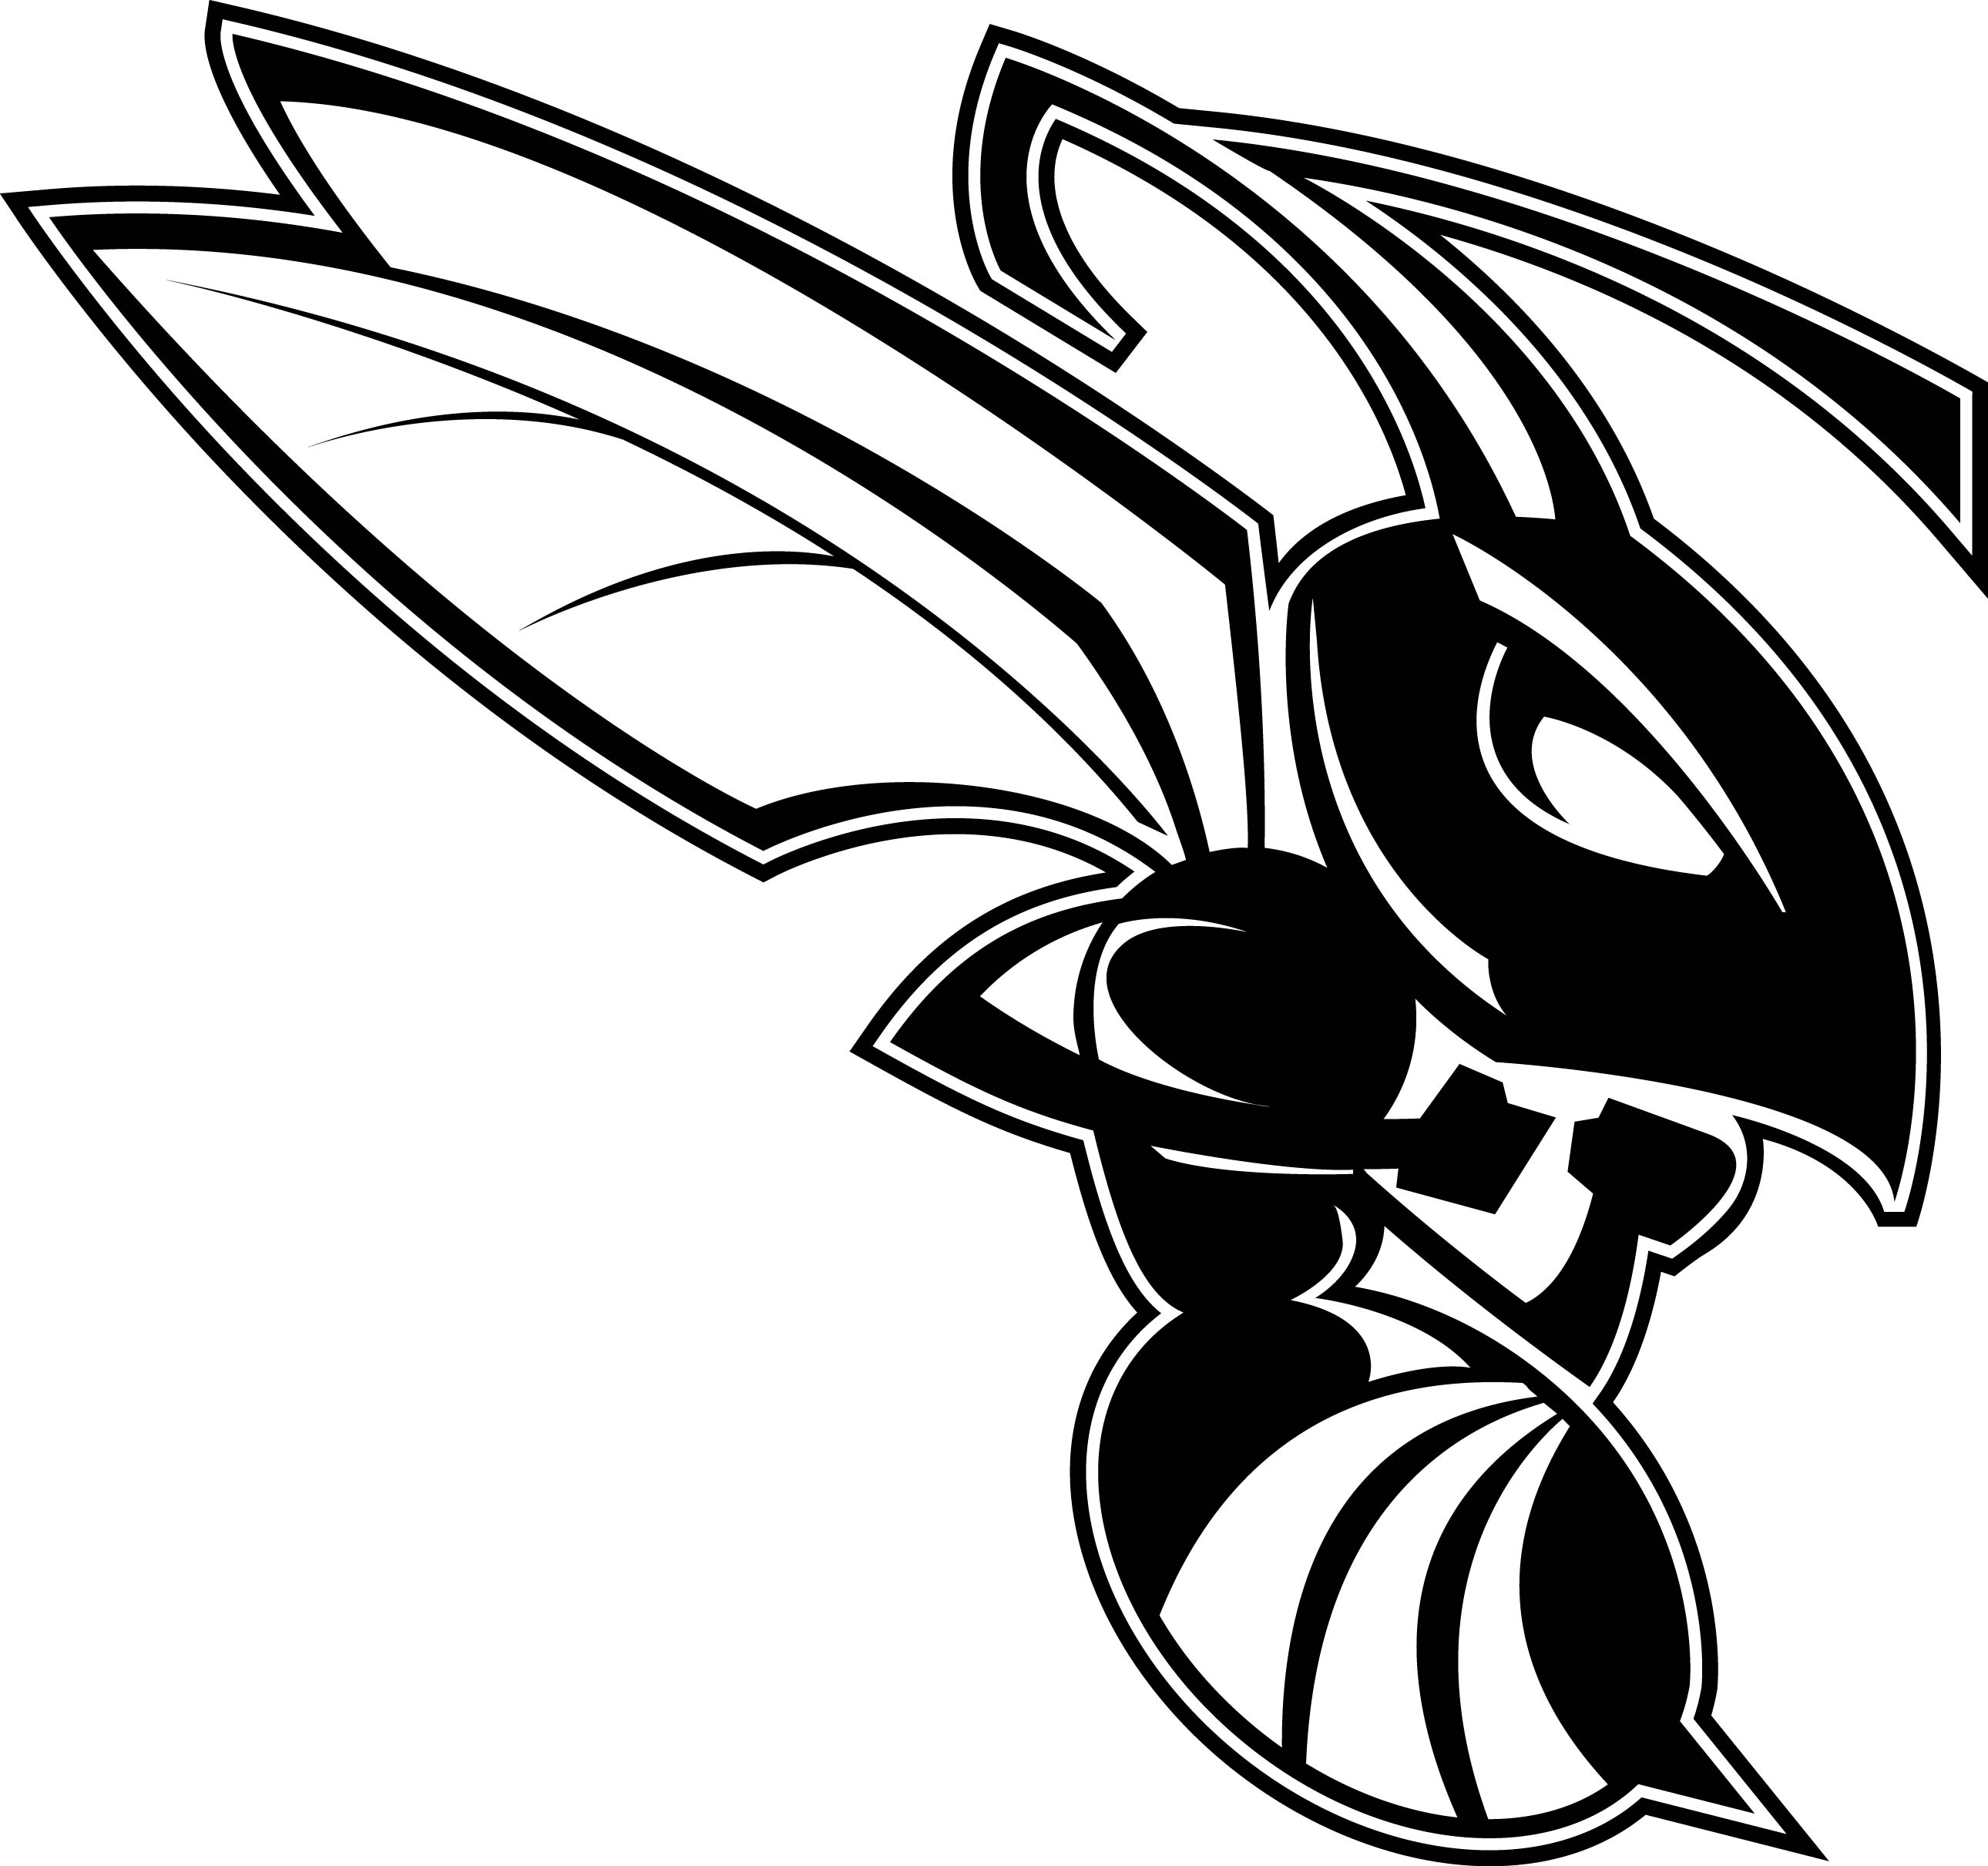 Hornet clipart black and white Honda Honda logo photo#22 Logo